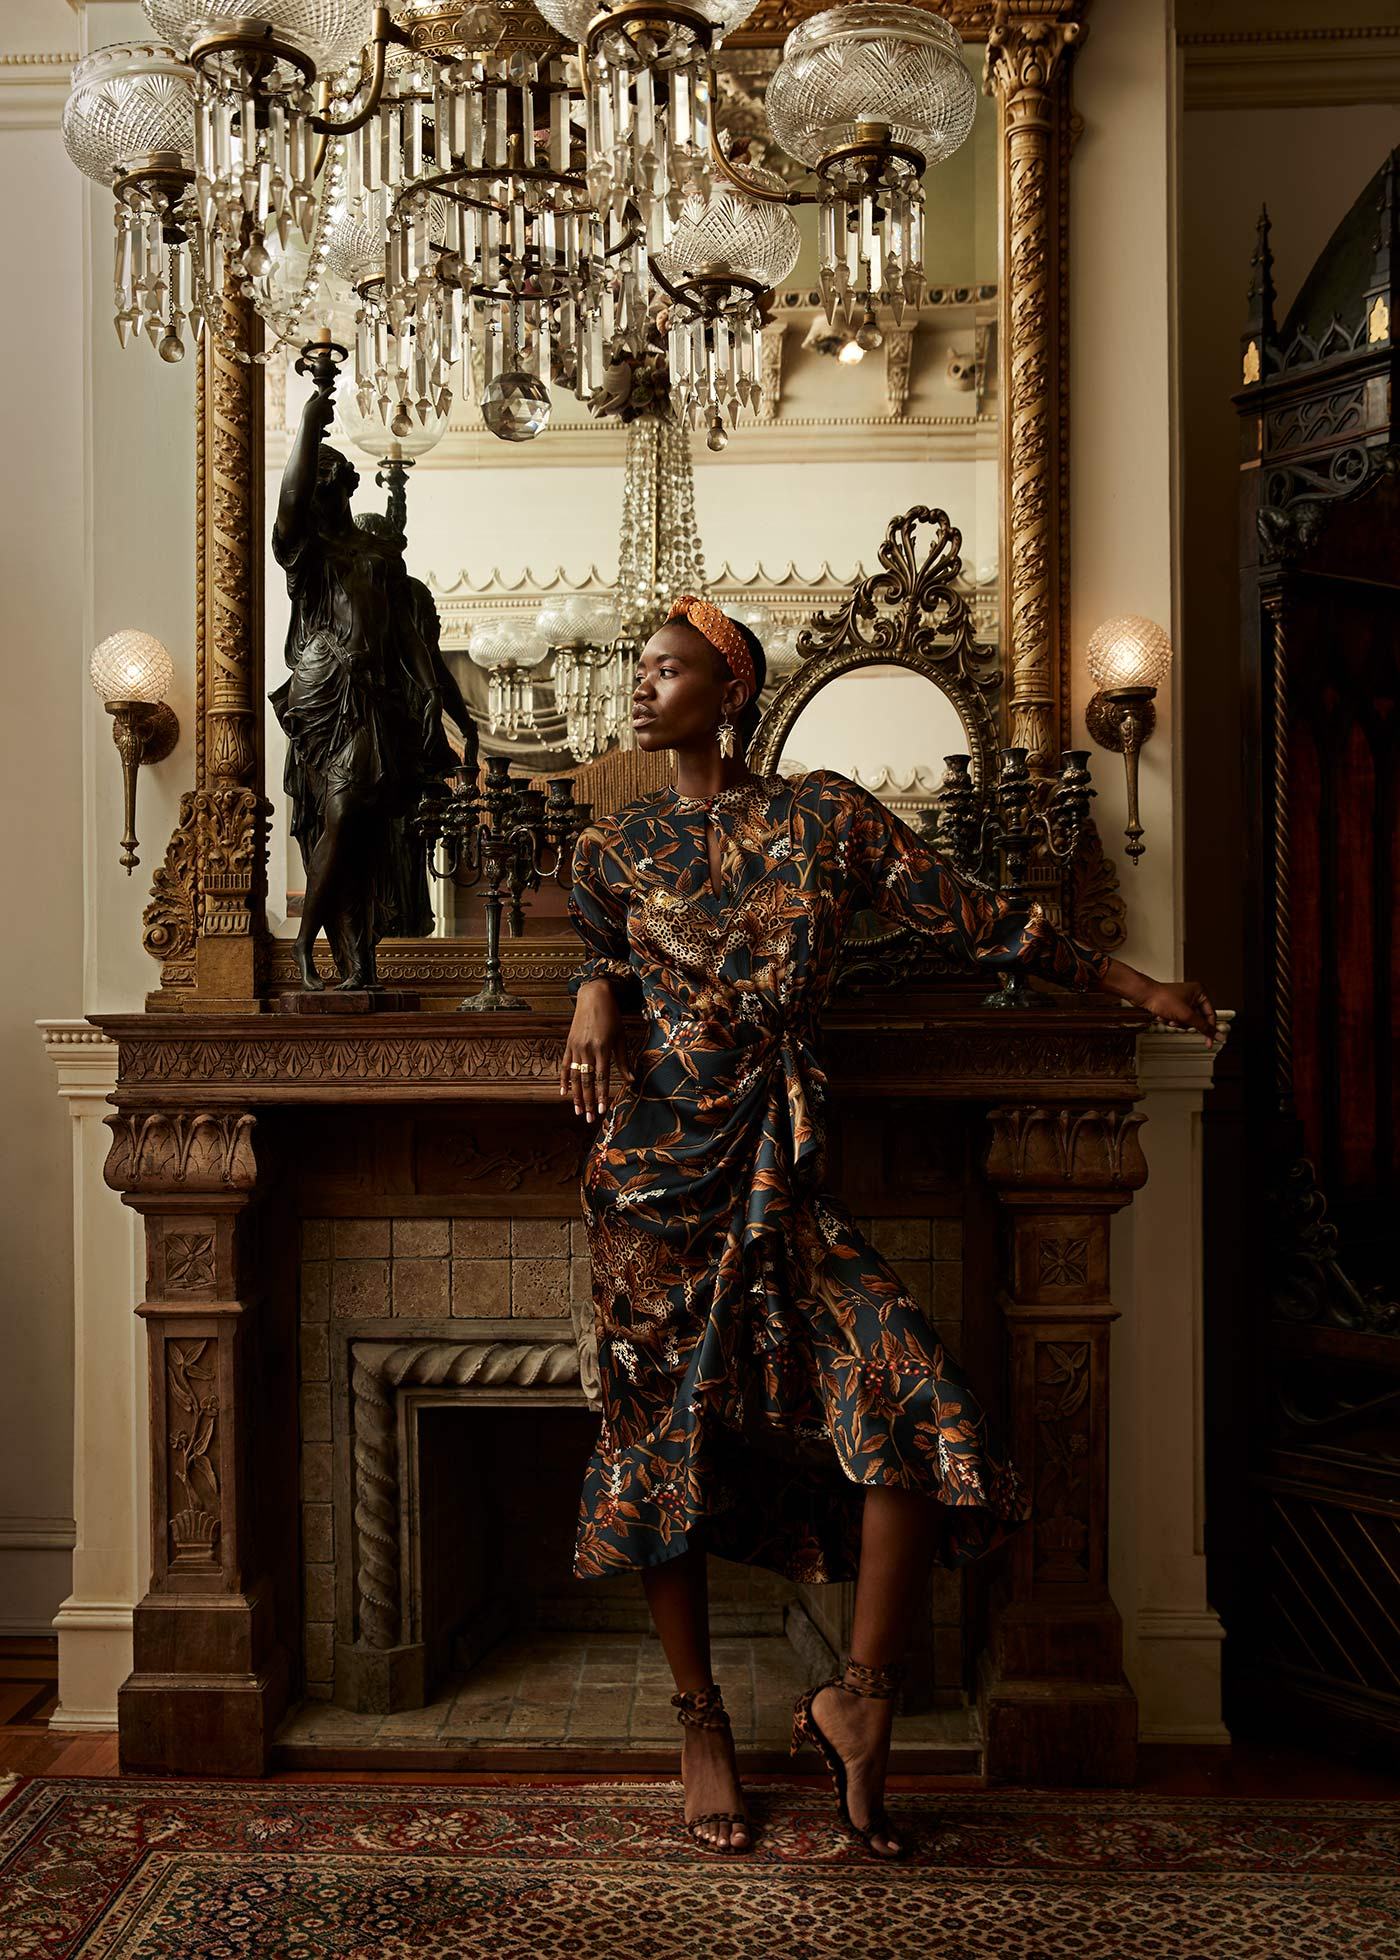 Fashion photograph of a model wearing animal print dress in front of a mirror